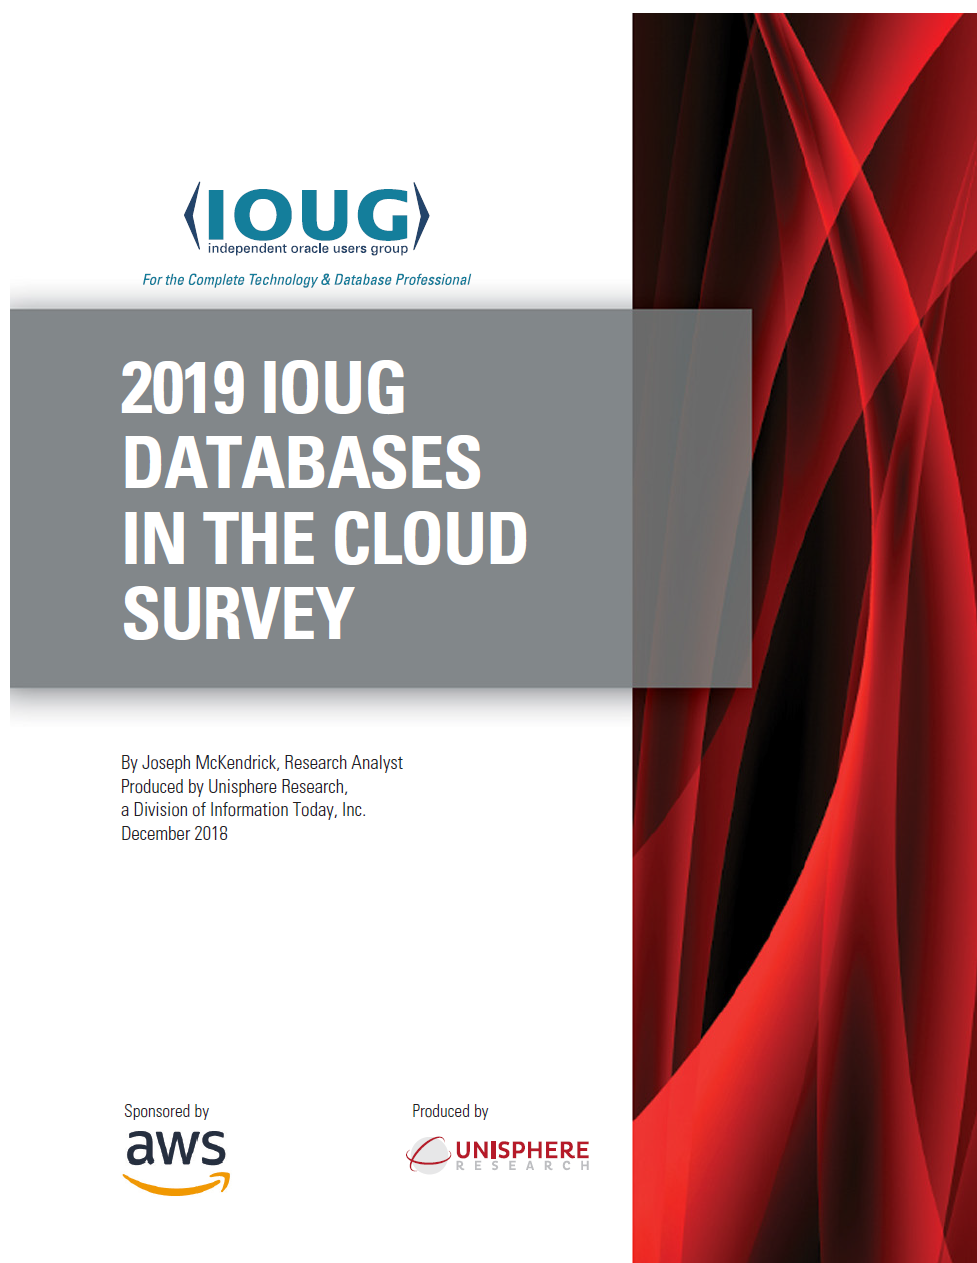 IOUG Cloud Database Survey